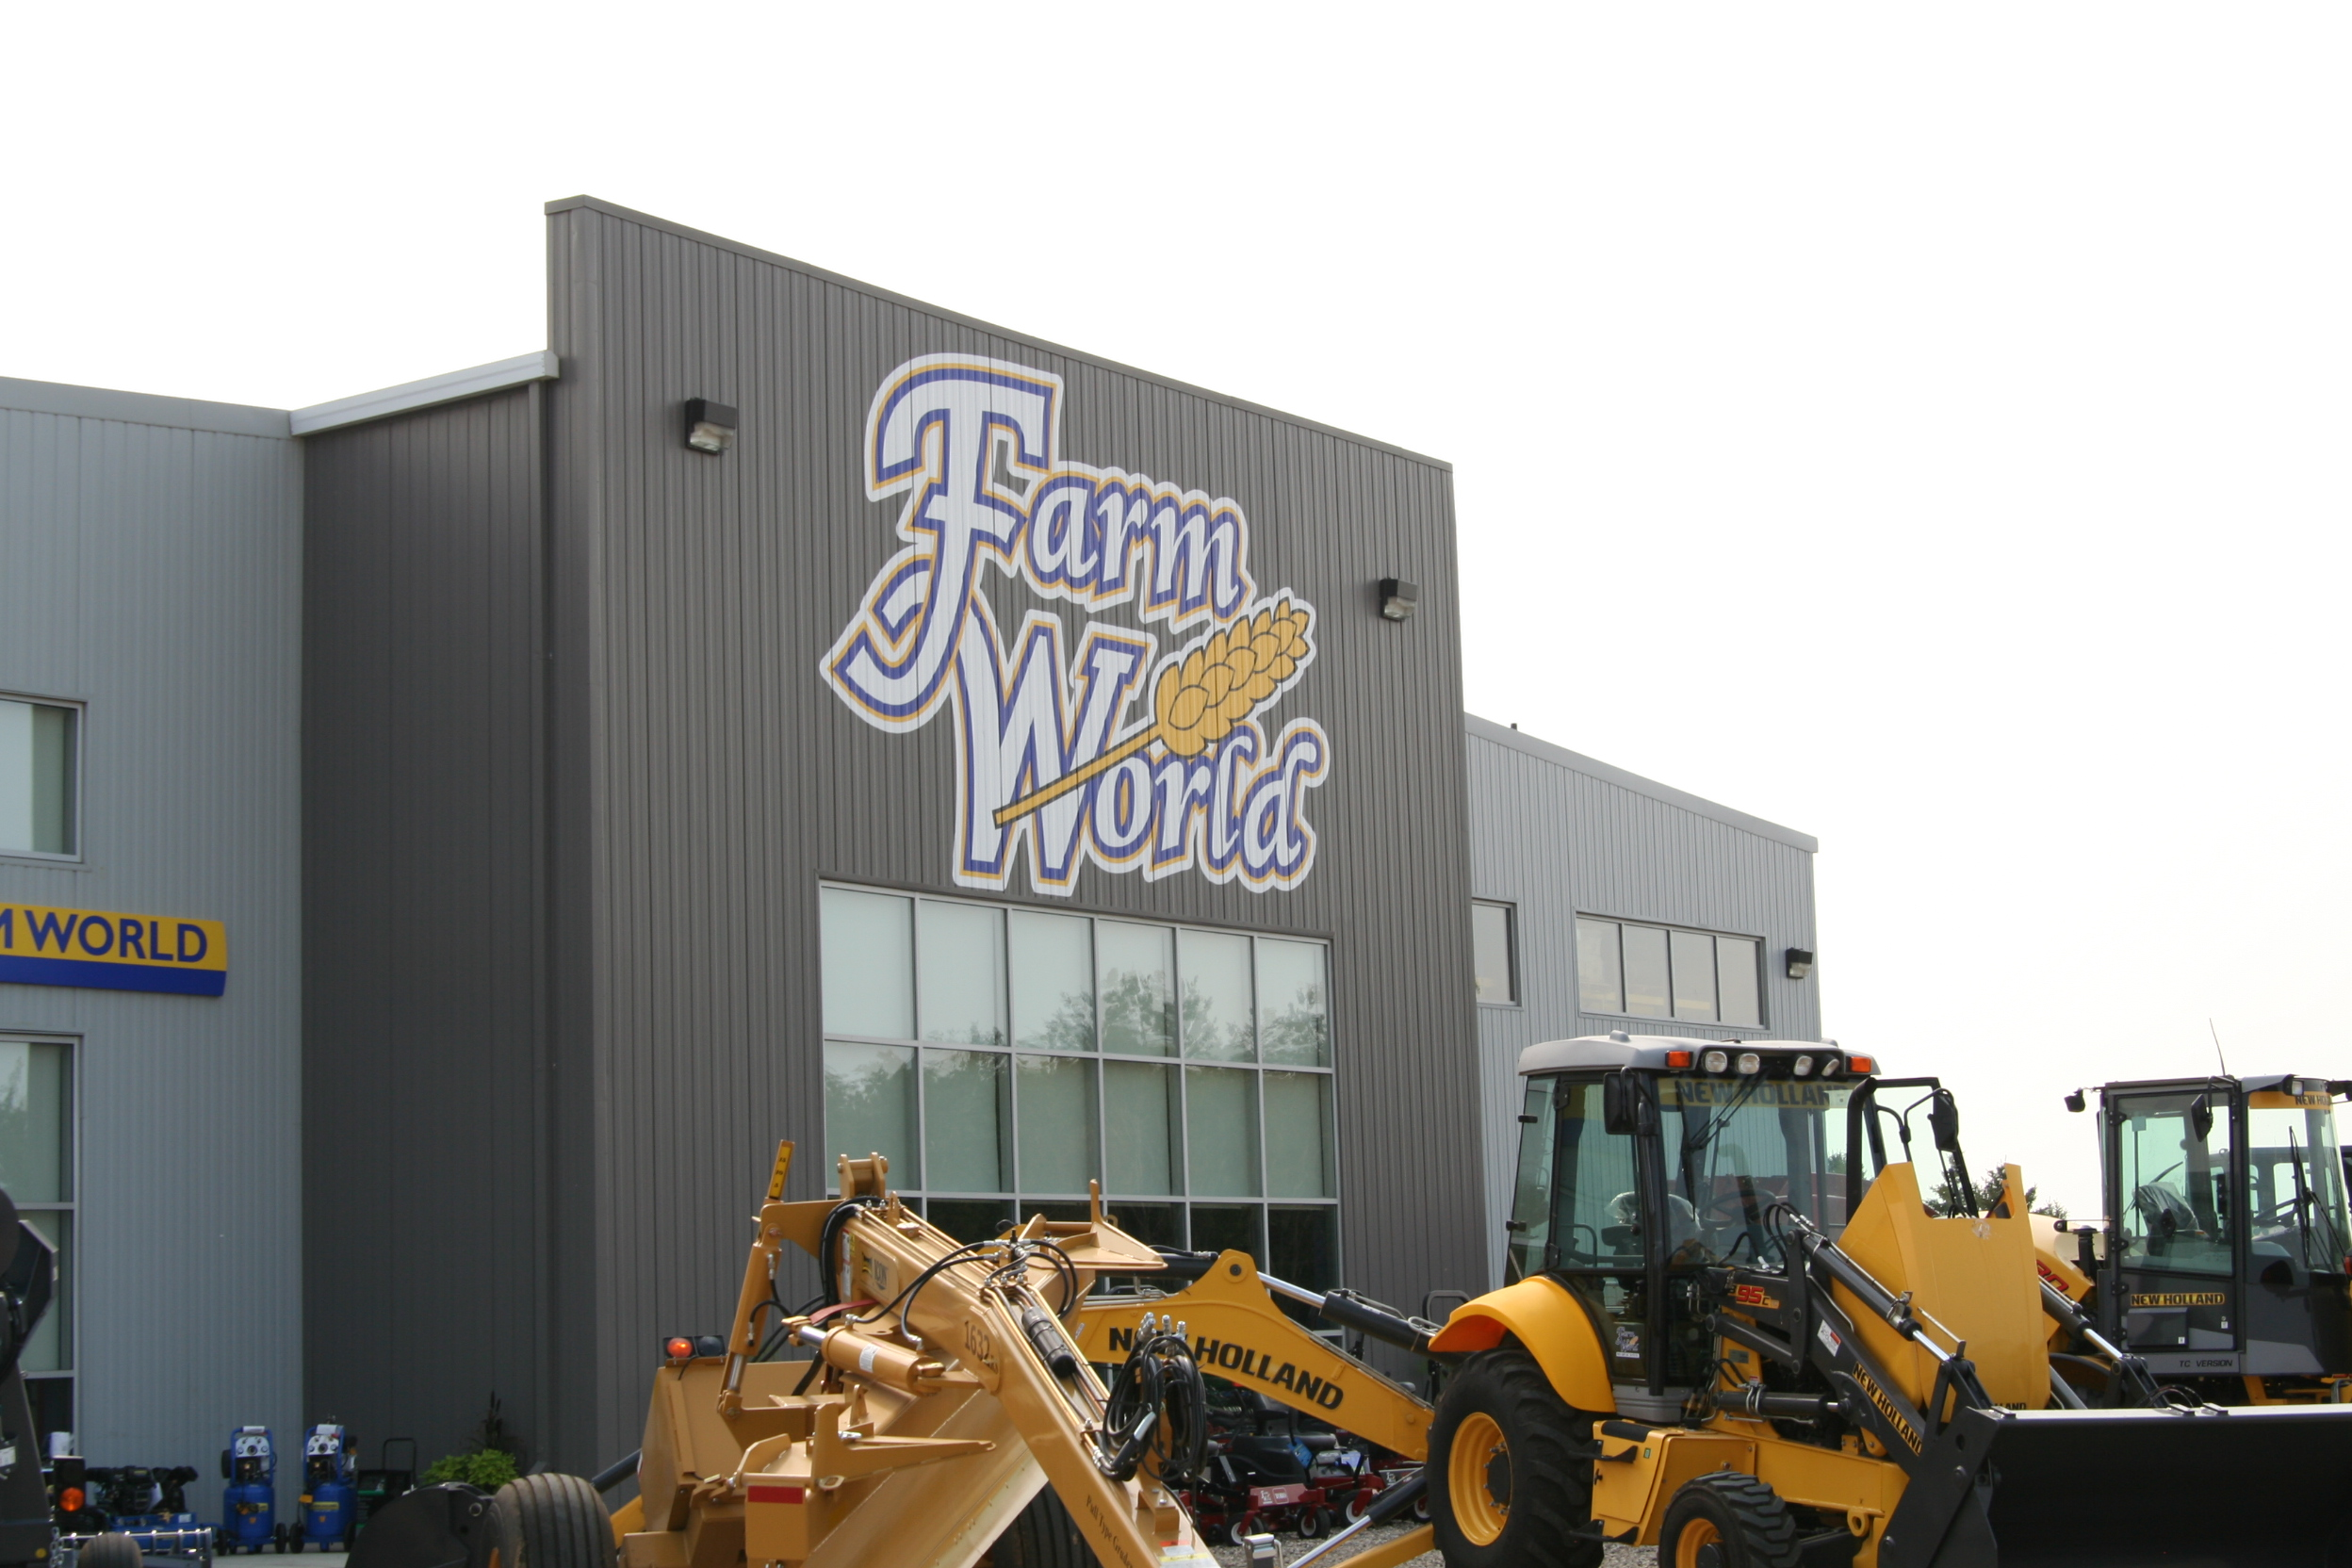 Work at Farm World